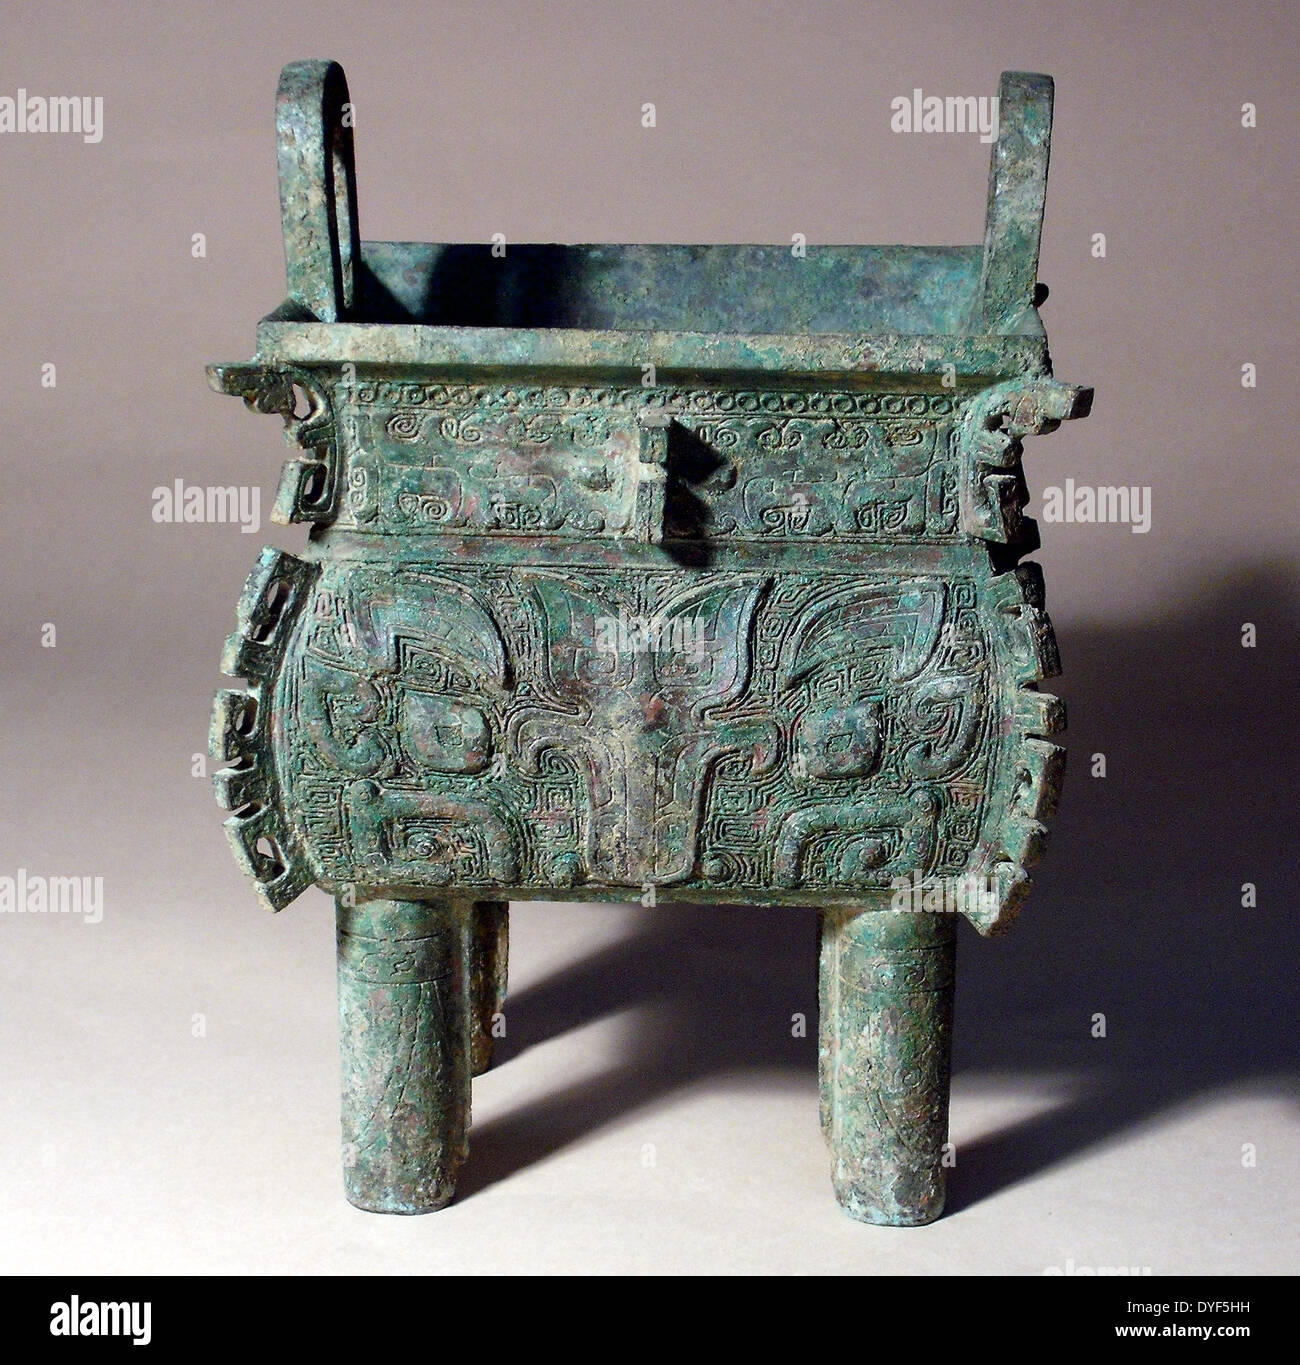 Ancient China: Food vessel (Fang Ding), Shang Dynasty, late period, 14th to 11th century BC. Bronze. - Stock Image